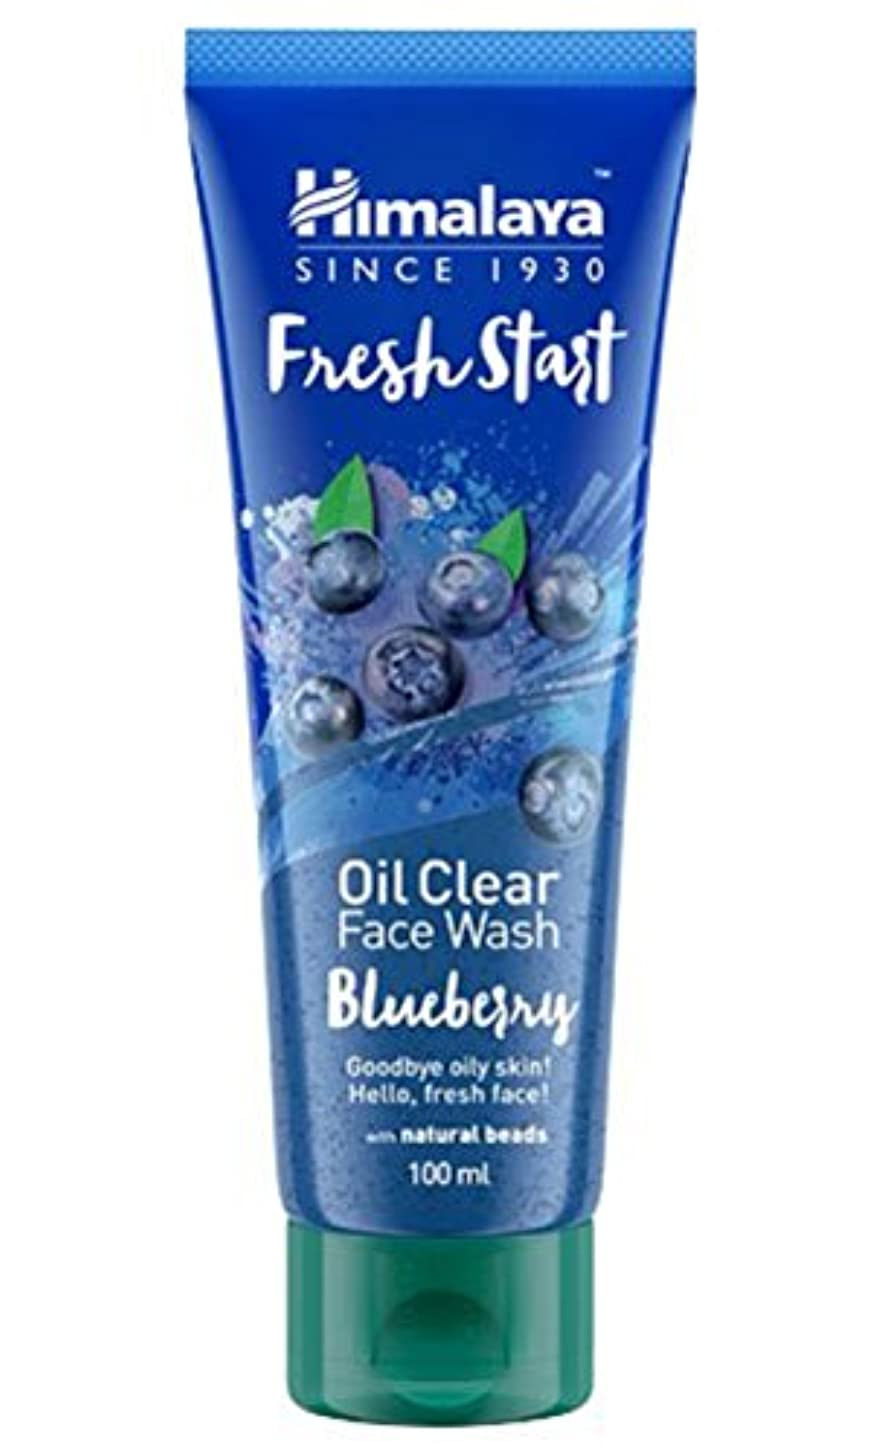 Himalaya Fresh Start Oil Clear Face Wash, Blueberry, 100ml